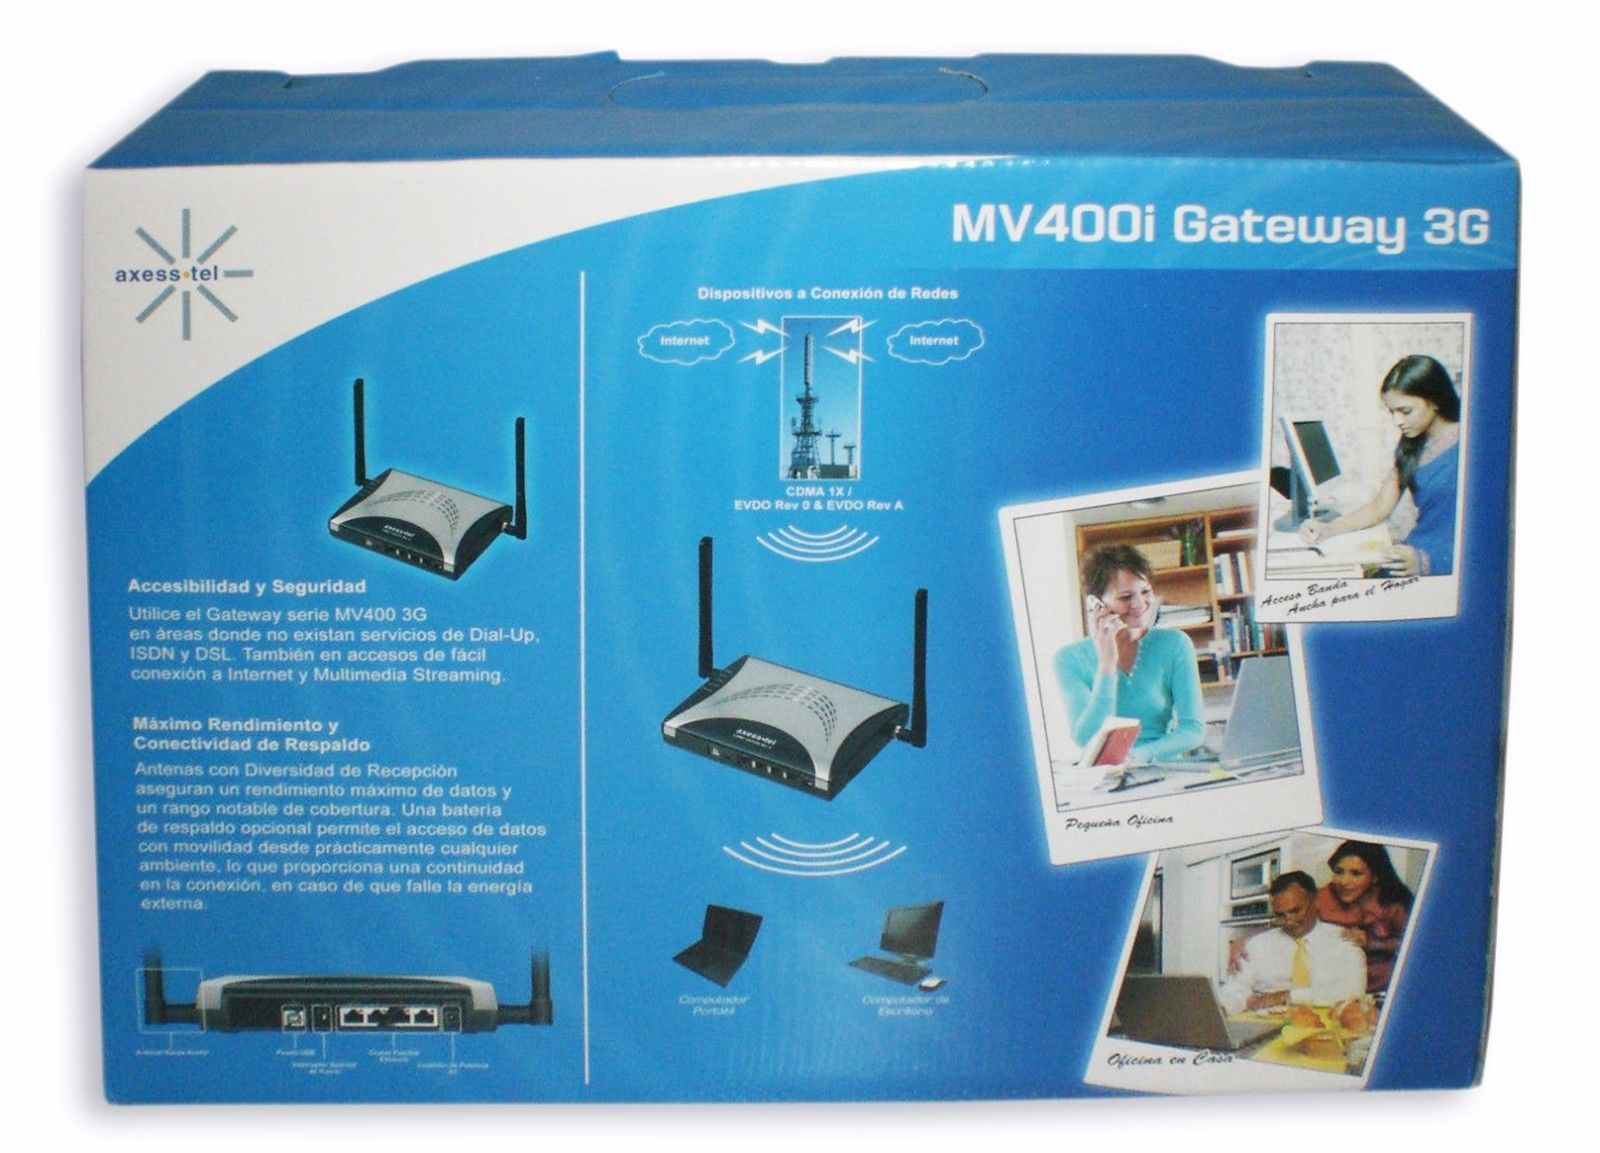 Axess-Tel Gateway 3G MV400i Router CDMA and 49 similar items